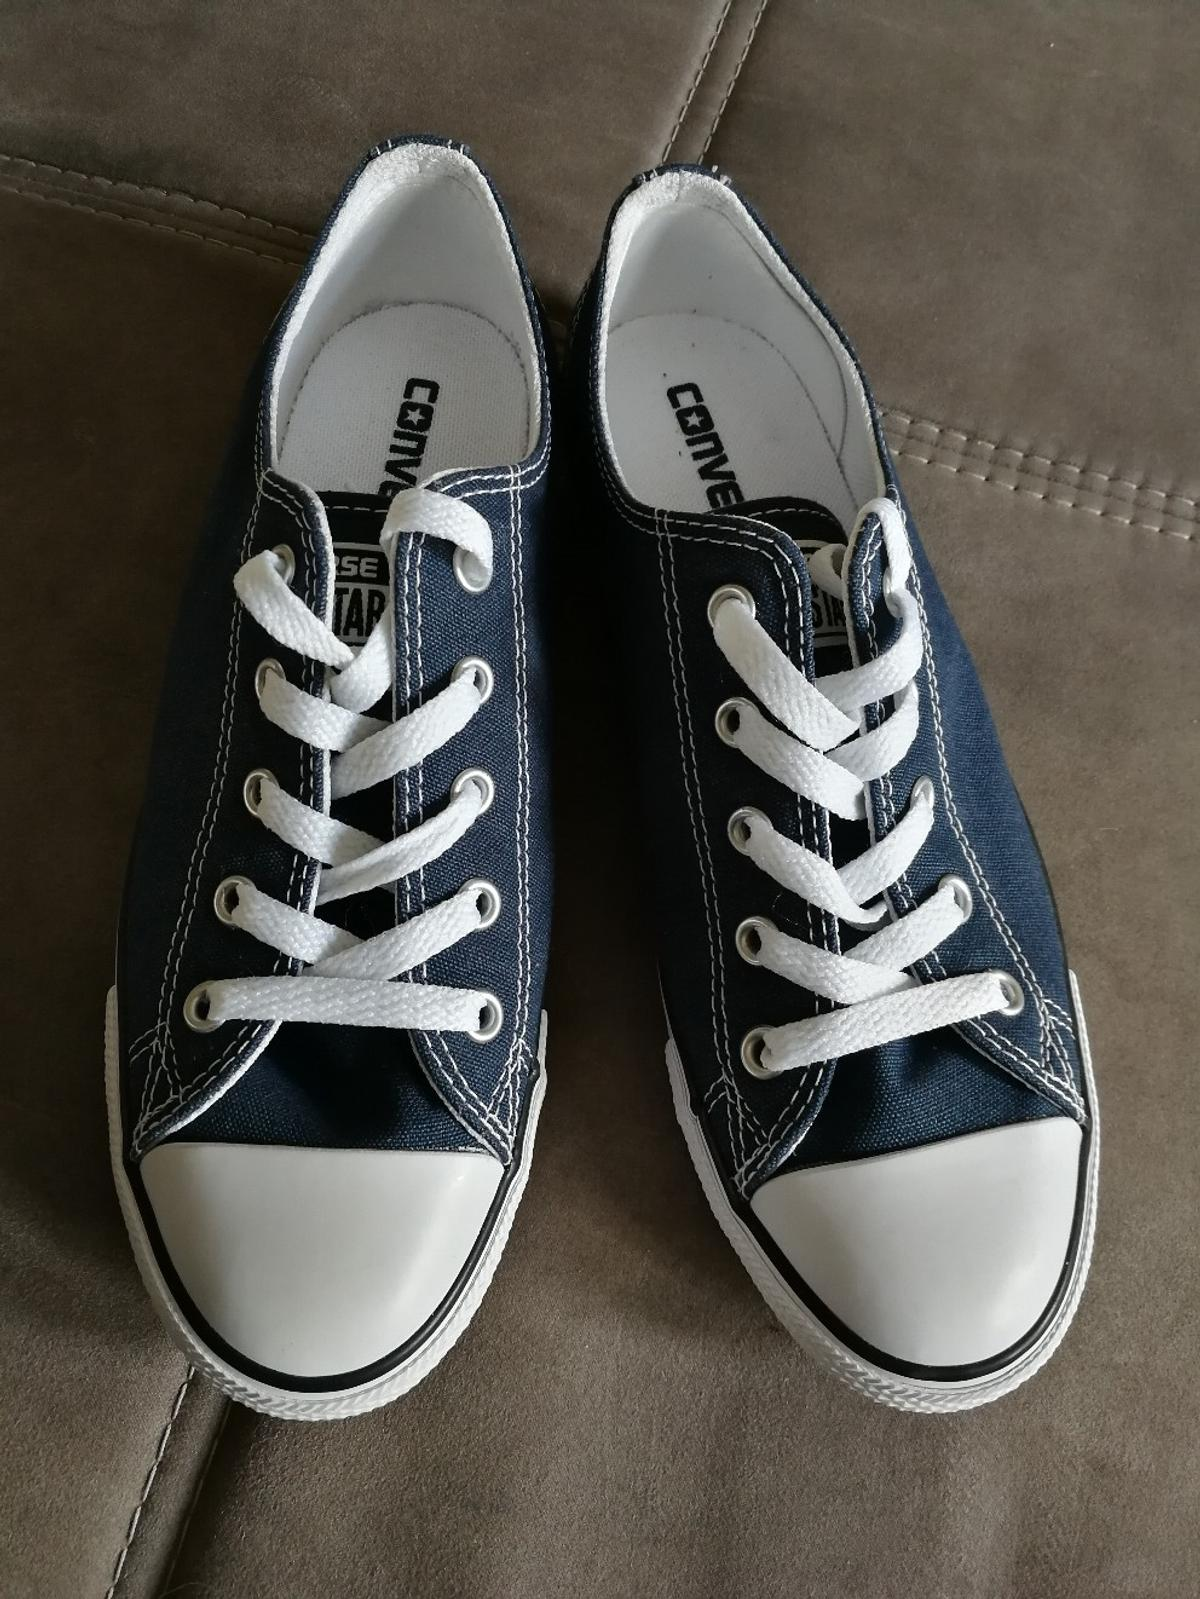 Converse All Stars in 38 NEU in 65510 Idstein for €24.99 for